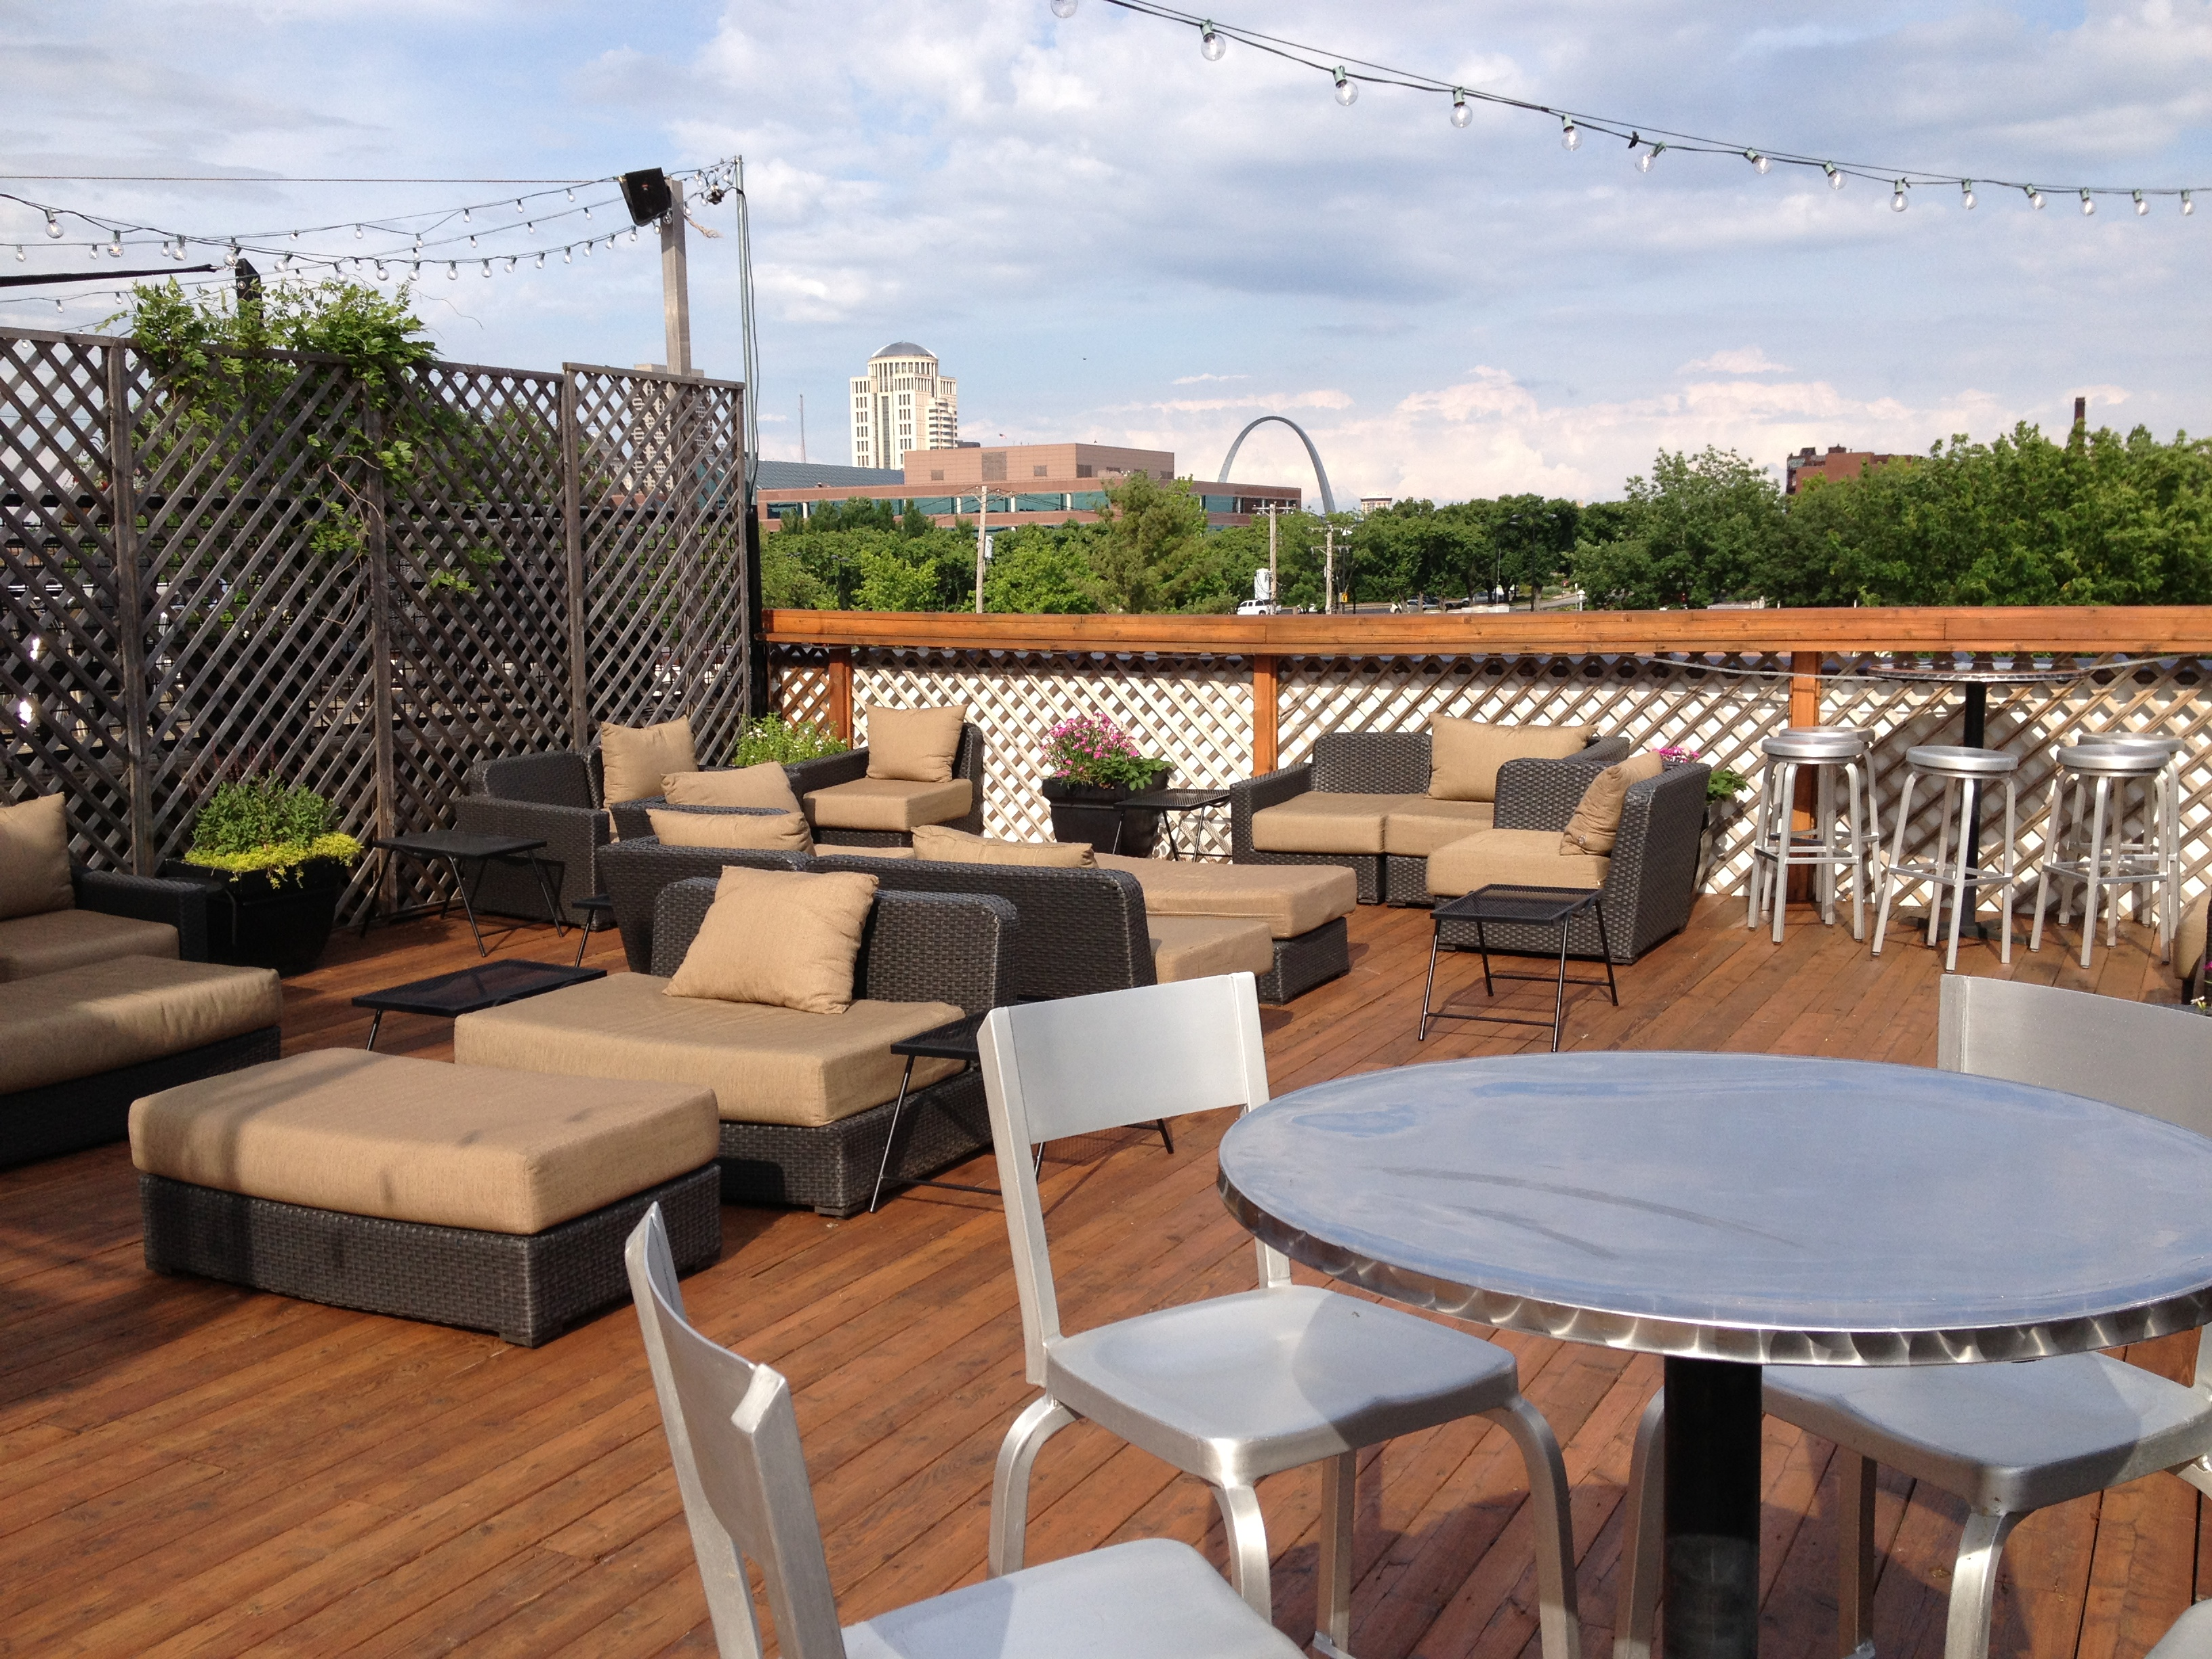 Rooftop deck deck design and ideas for Rooftop deck design ideas